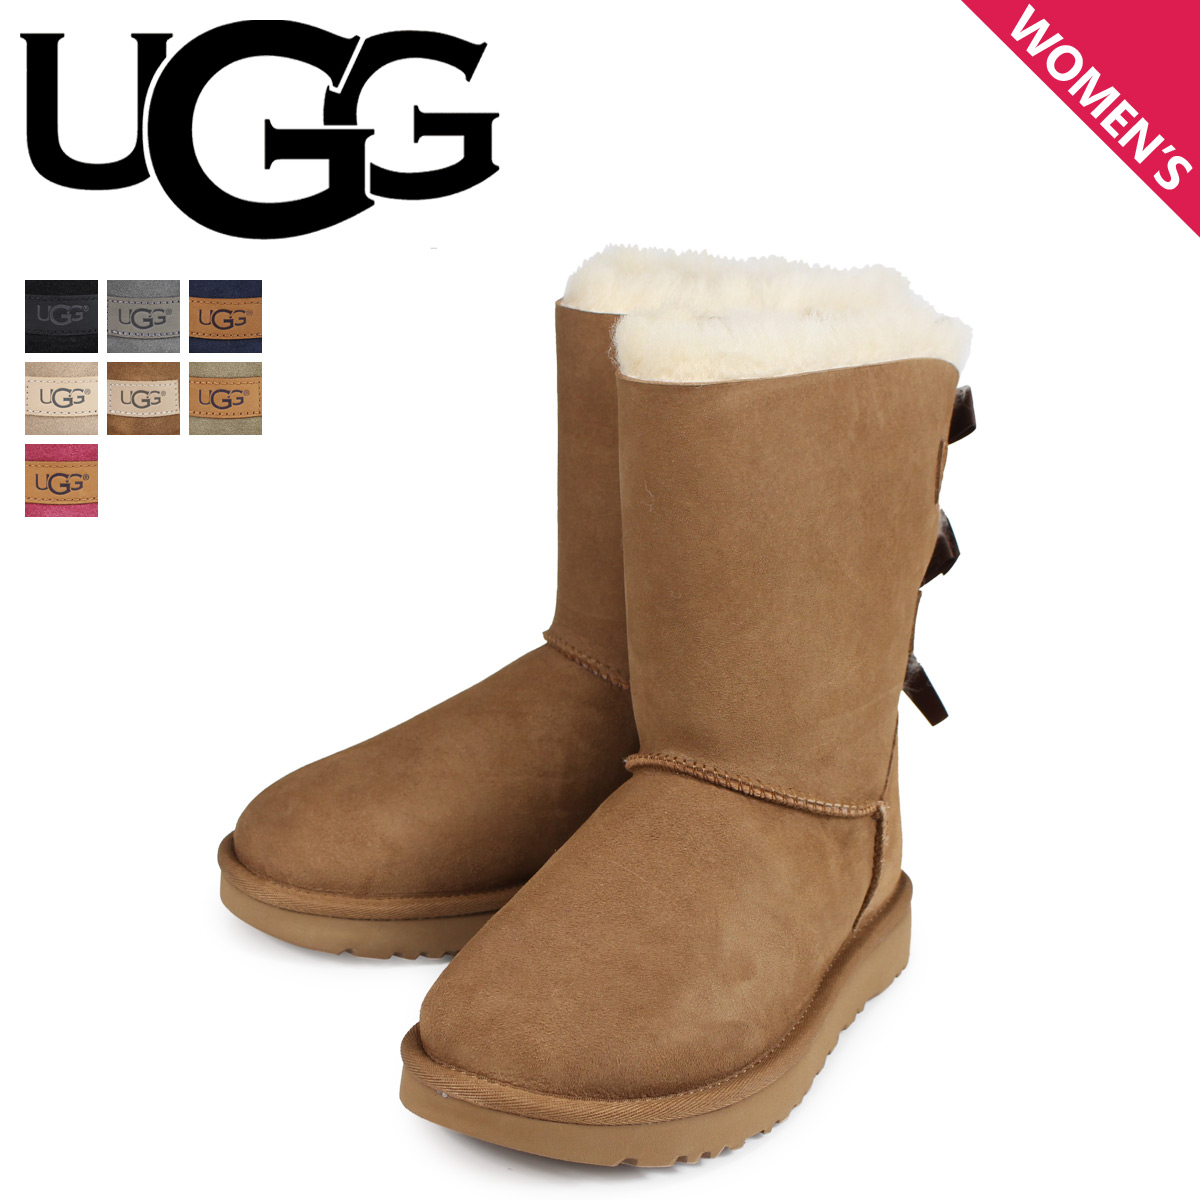 7c066b0ce06 アグ UGG mouton boots mini-Bailey bow tie 2 WOMENS MINI BAILEY BOW II 1016225  Lady's